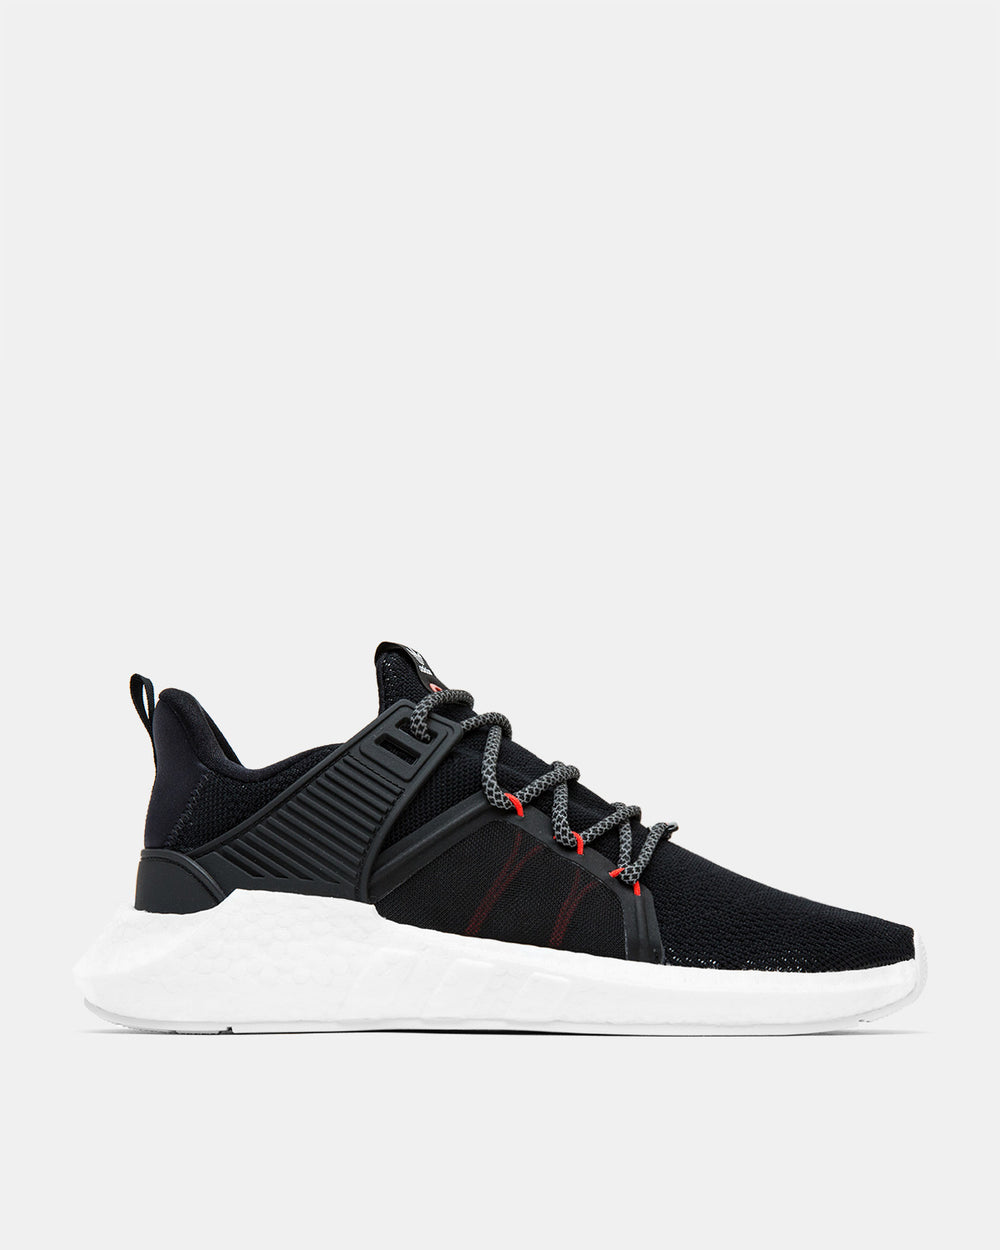 BAIT EQT SUPPORT FUTURE CORE BLACK RED CARBON